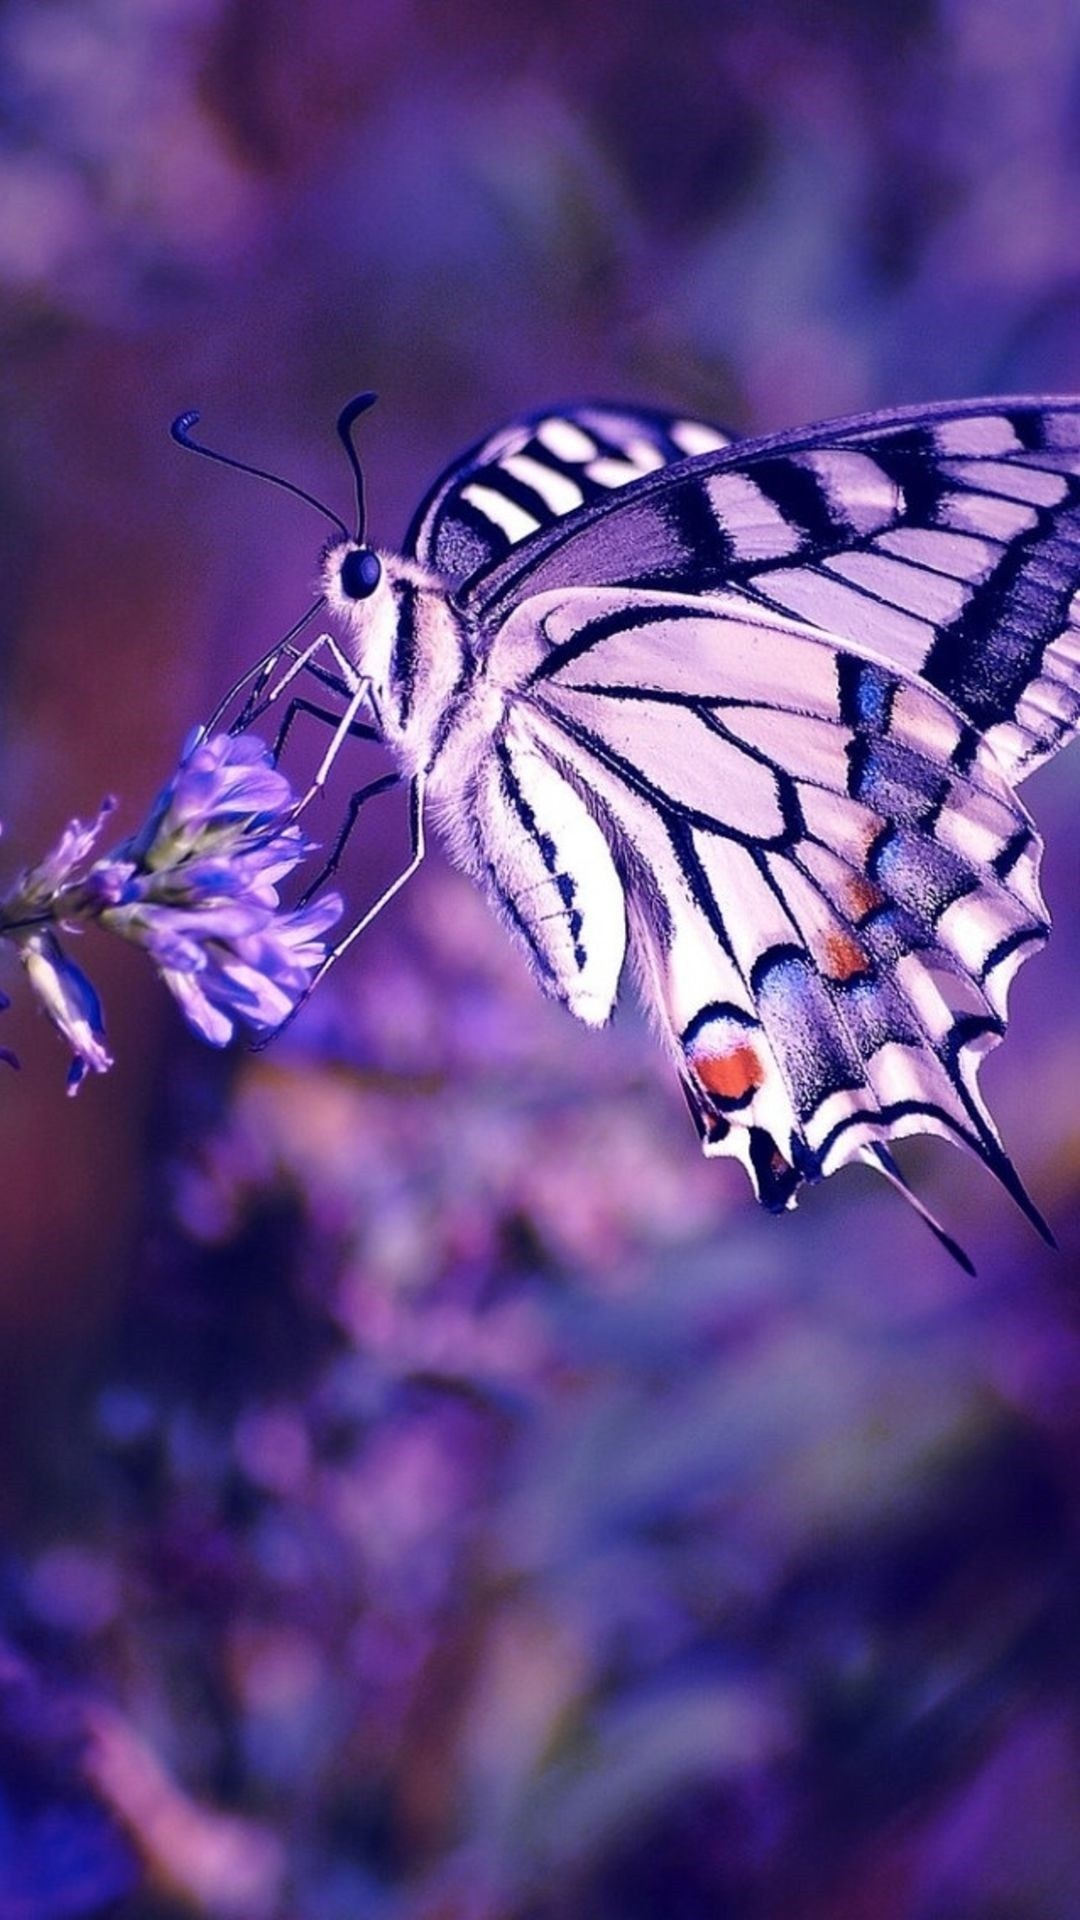 Aesthetic Butterfly hd wallpaper for iphone